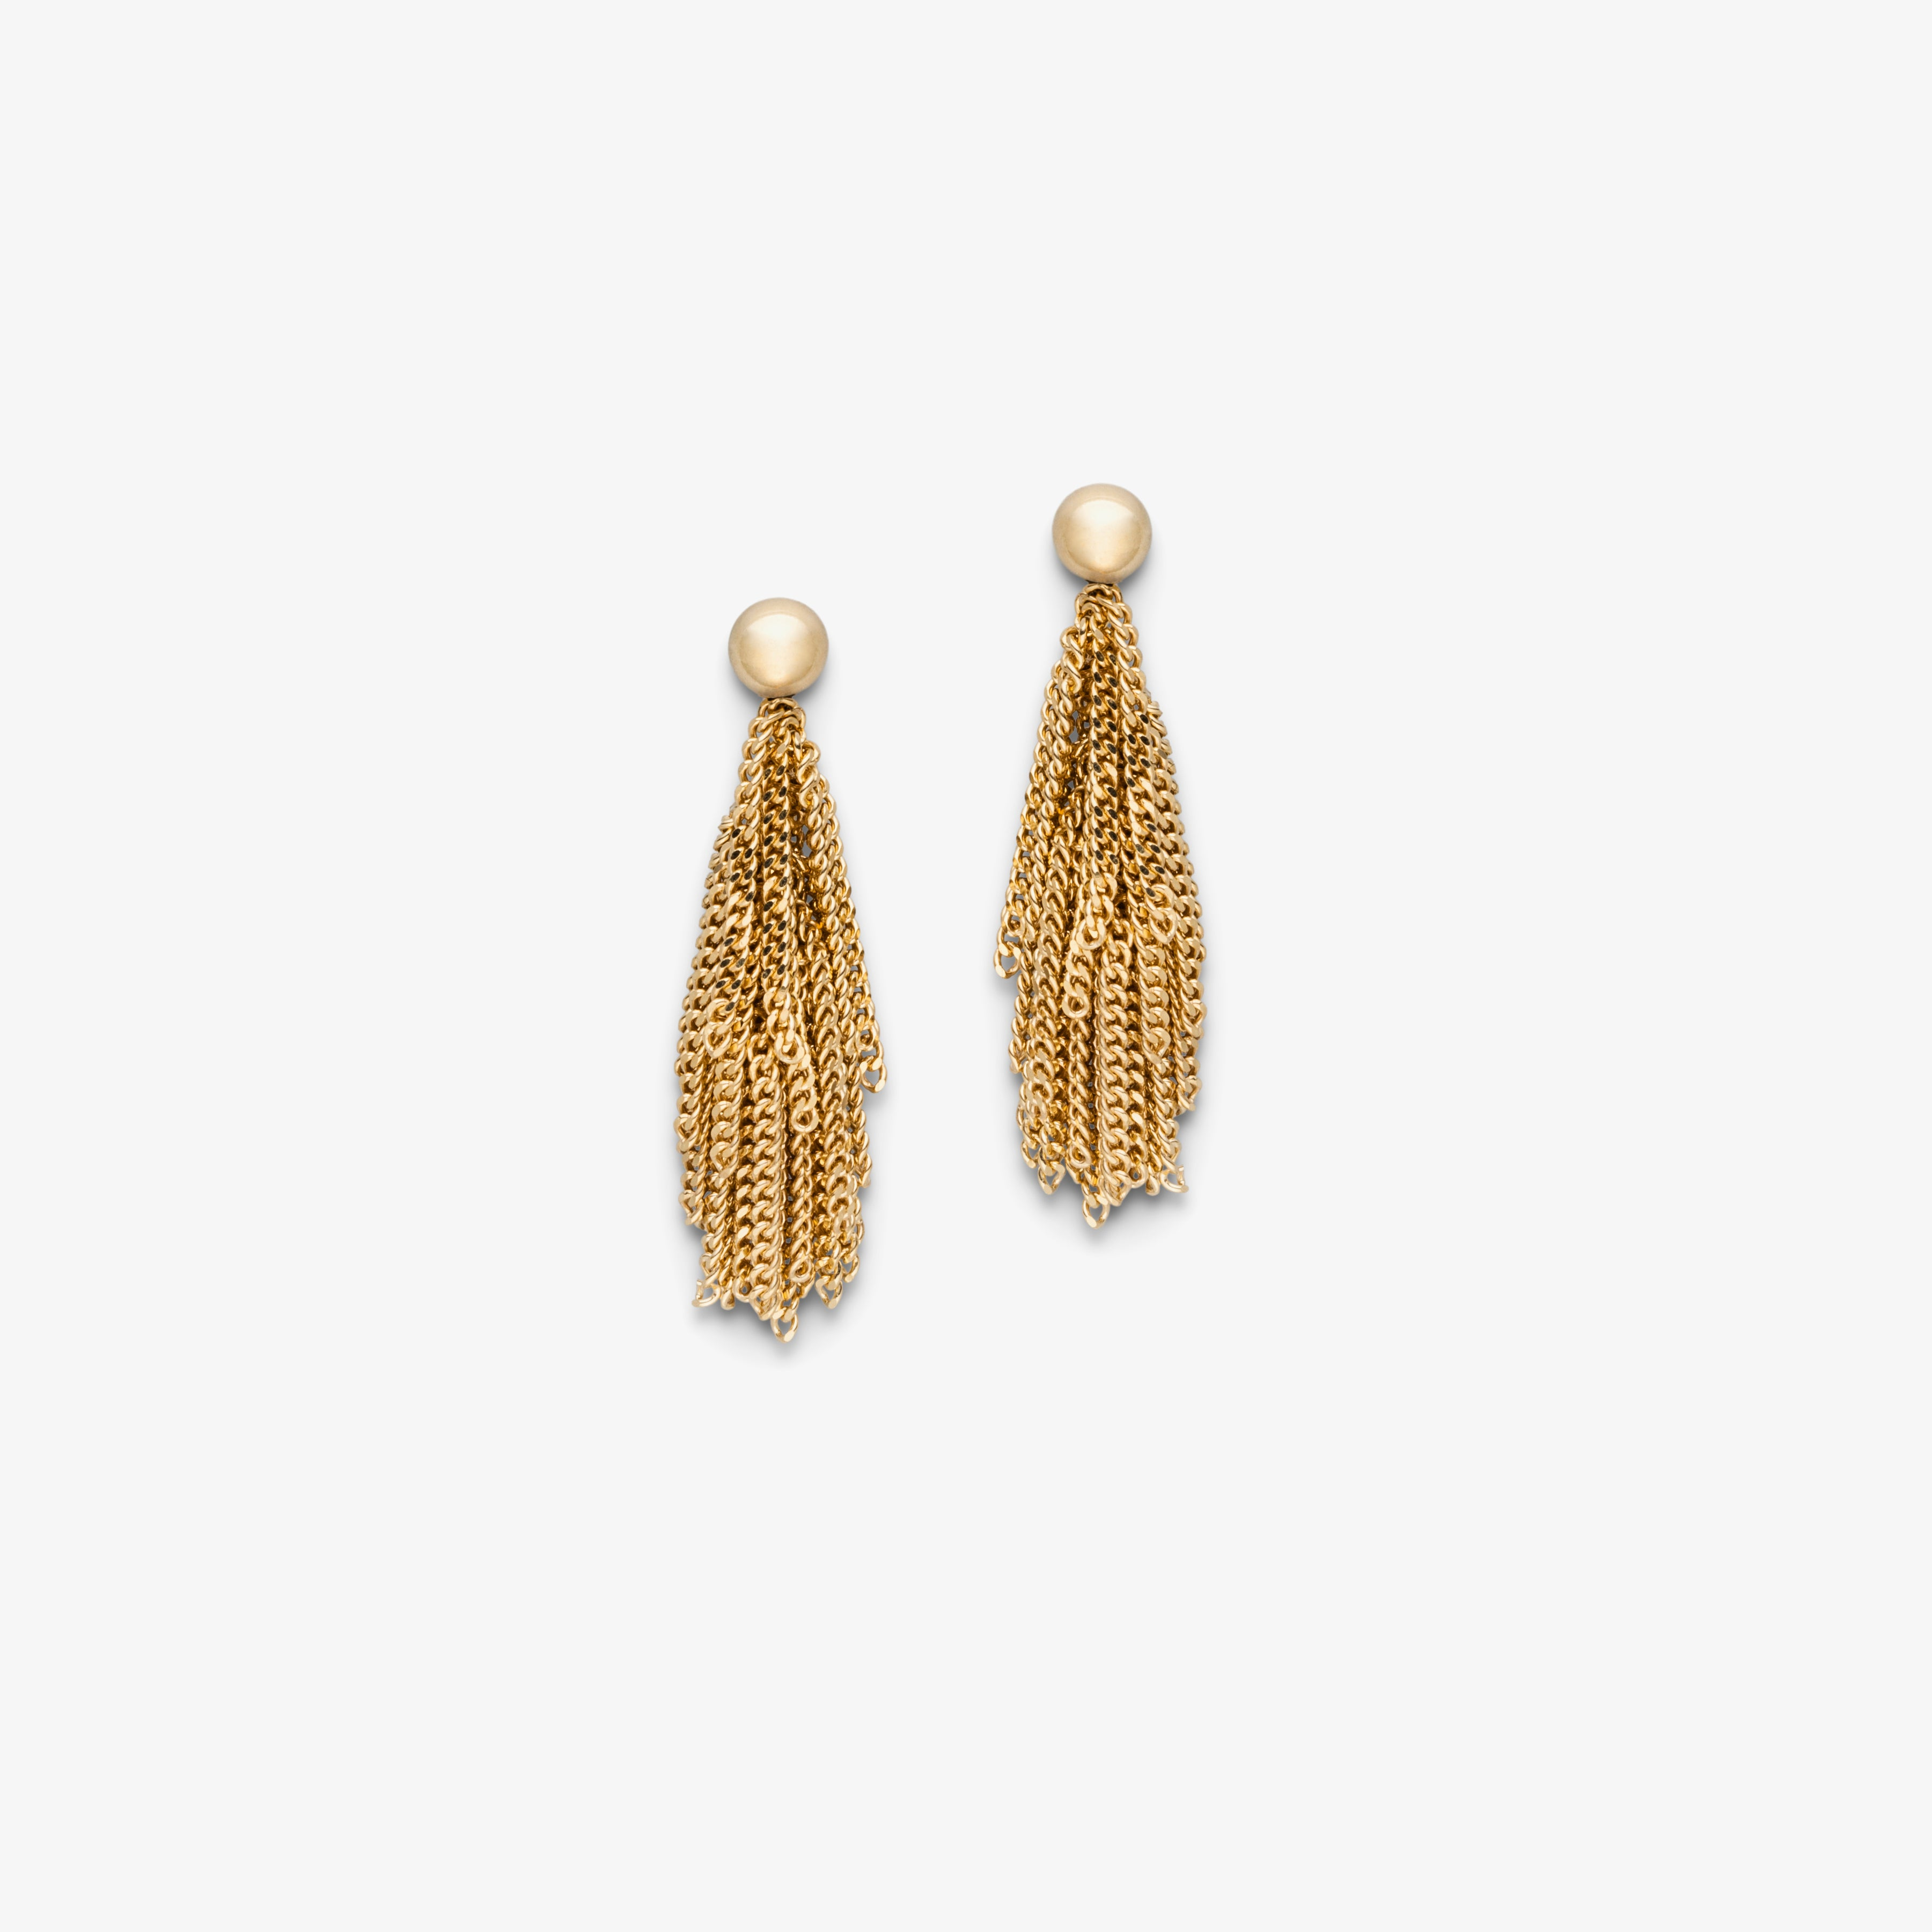 SHORT SIARA EARRINGS - GOLD PLATED